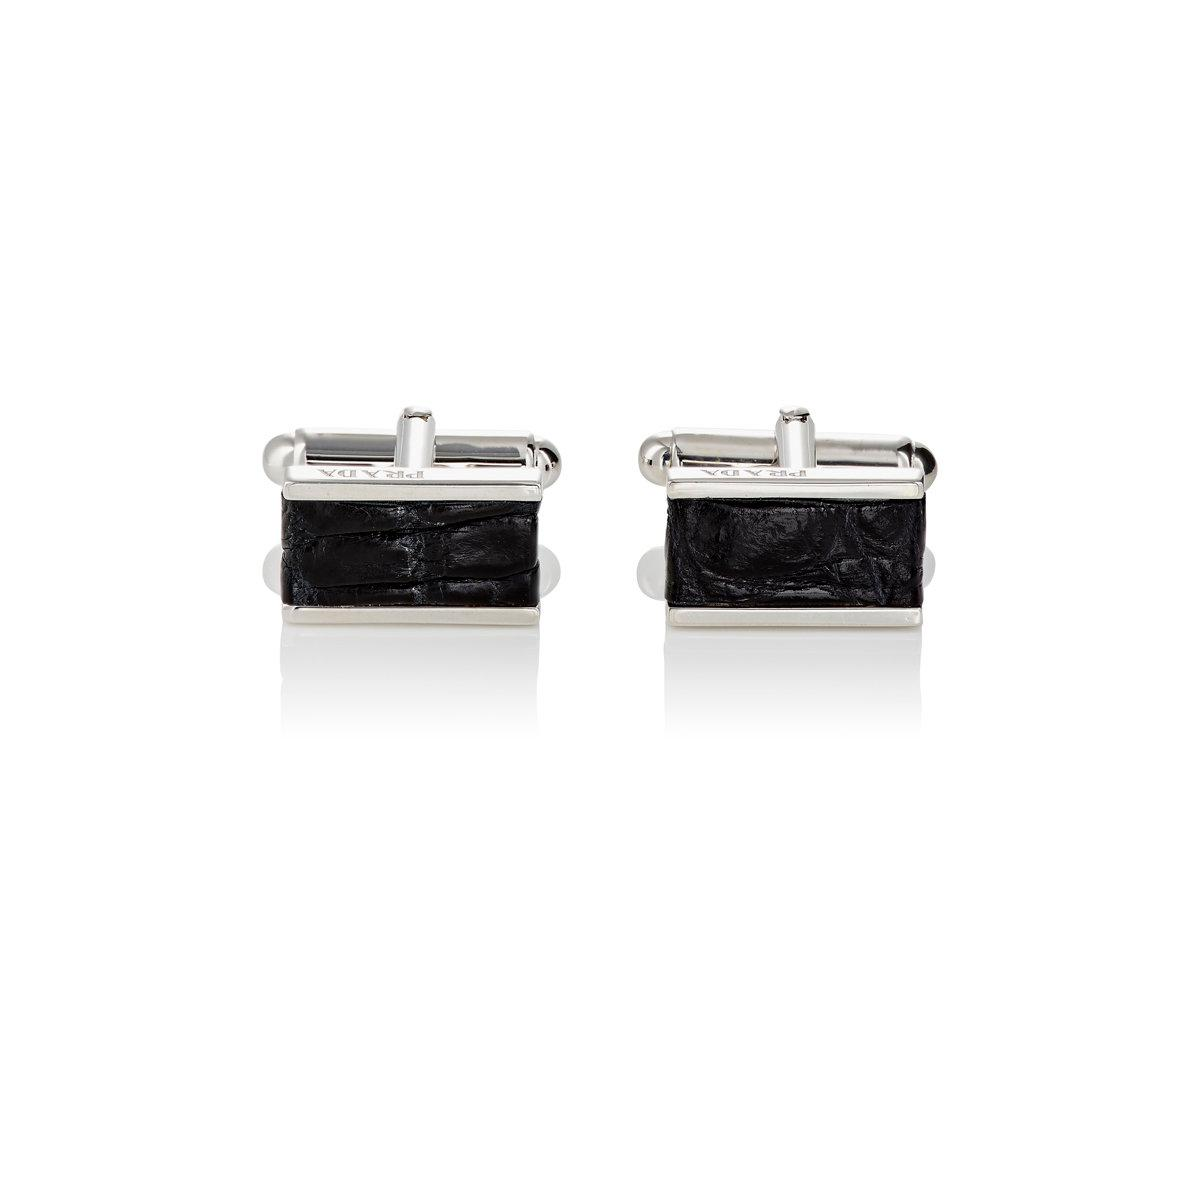 Prada Mens Rectangular Cufflinks kopWAZ